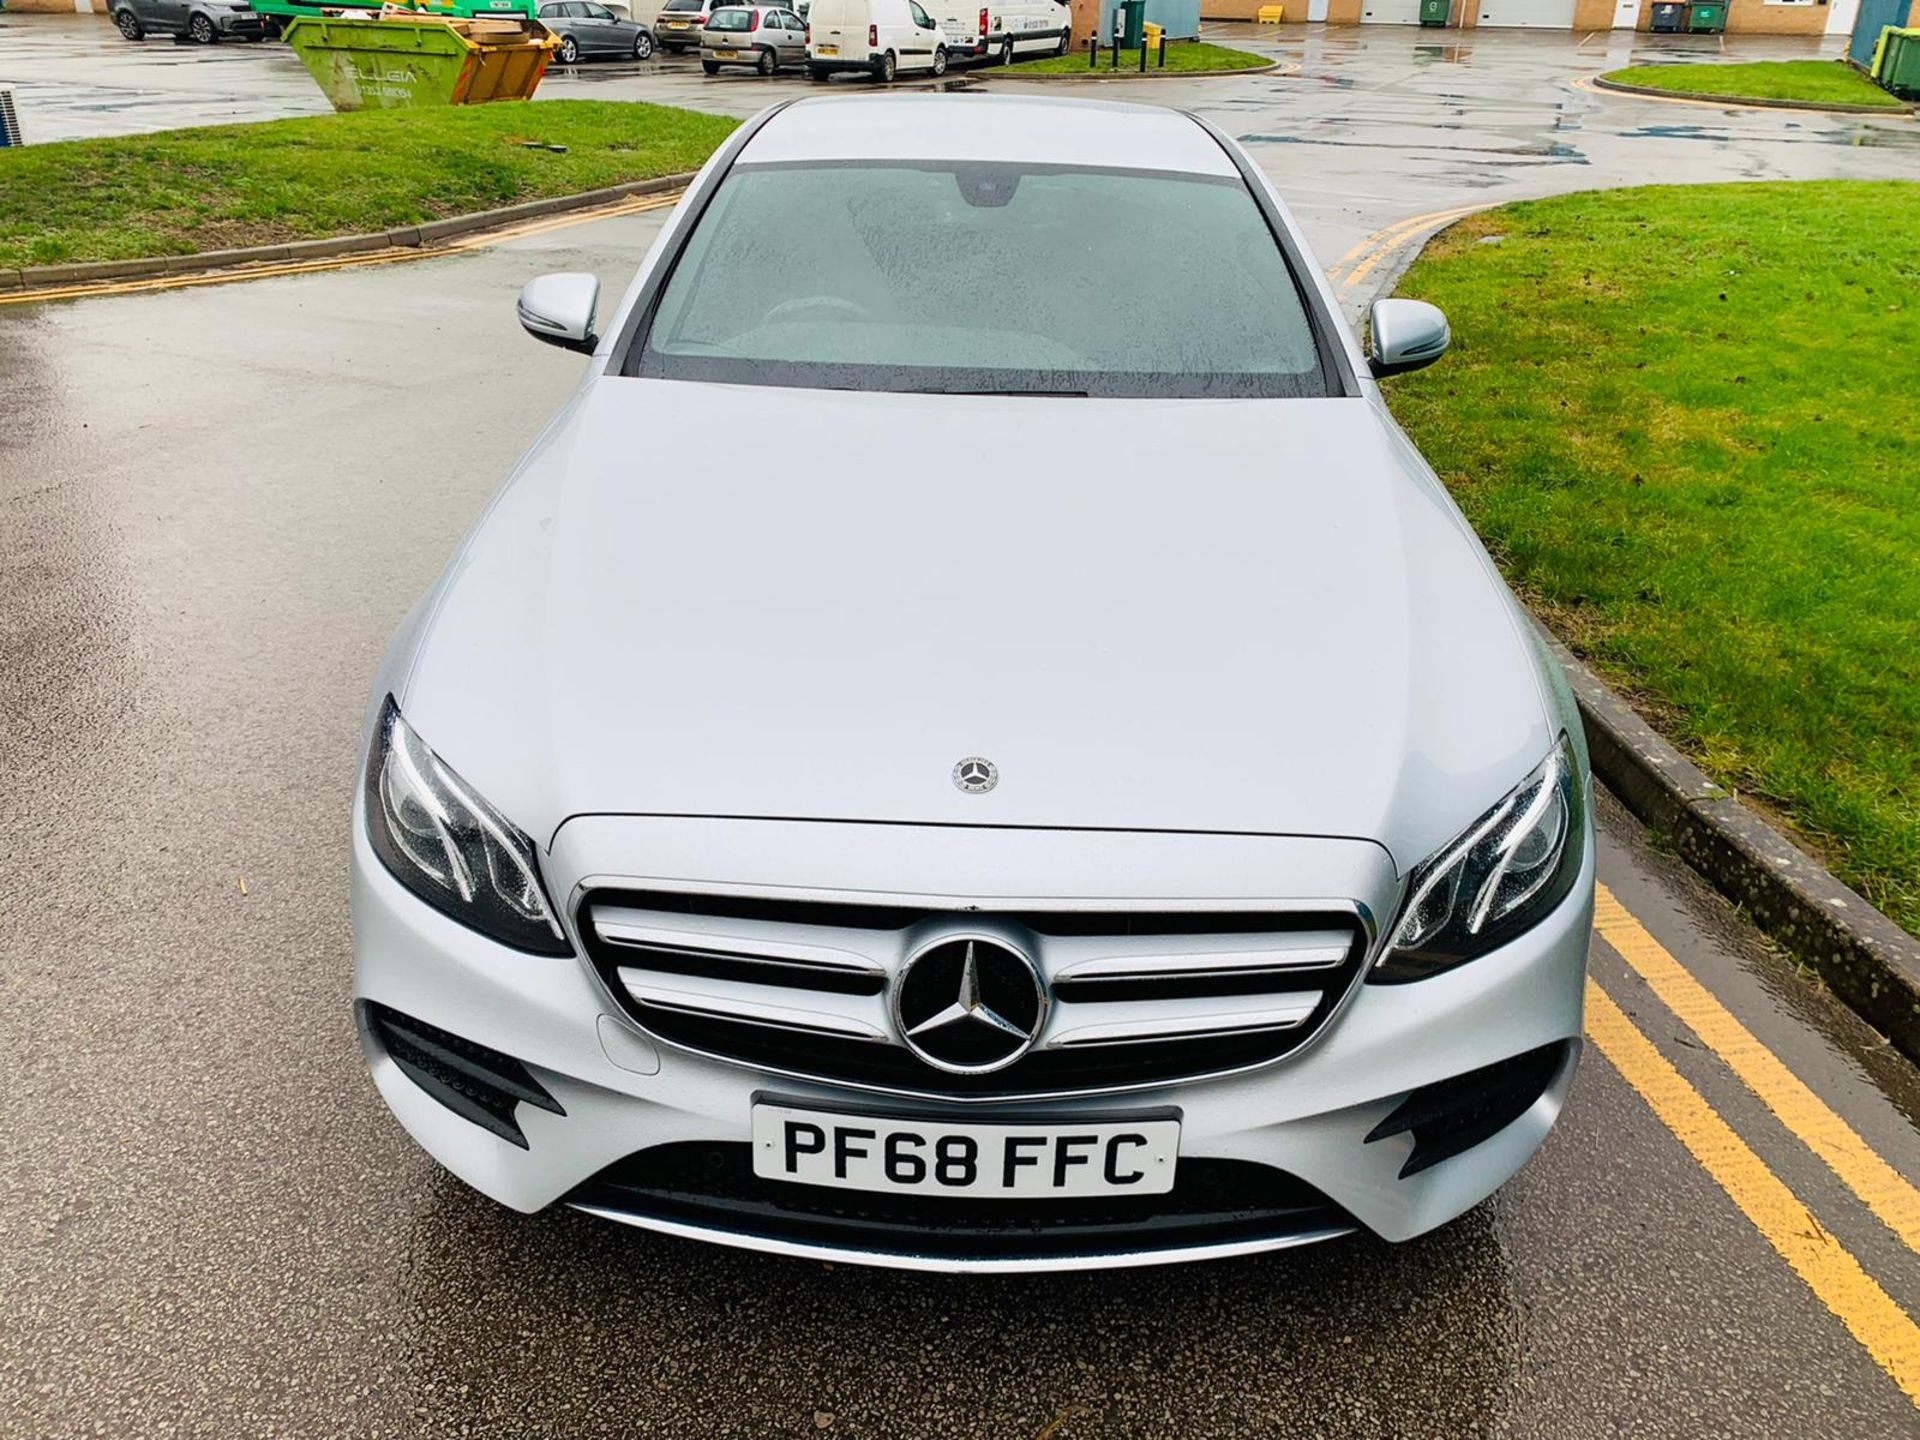 (Reserve Met)Mercedes E220d AMG Line Auto 9G Tronic - 2019 Reg - Reversing Cam - 1 Owner From New - Image 3 of 30